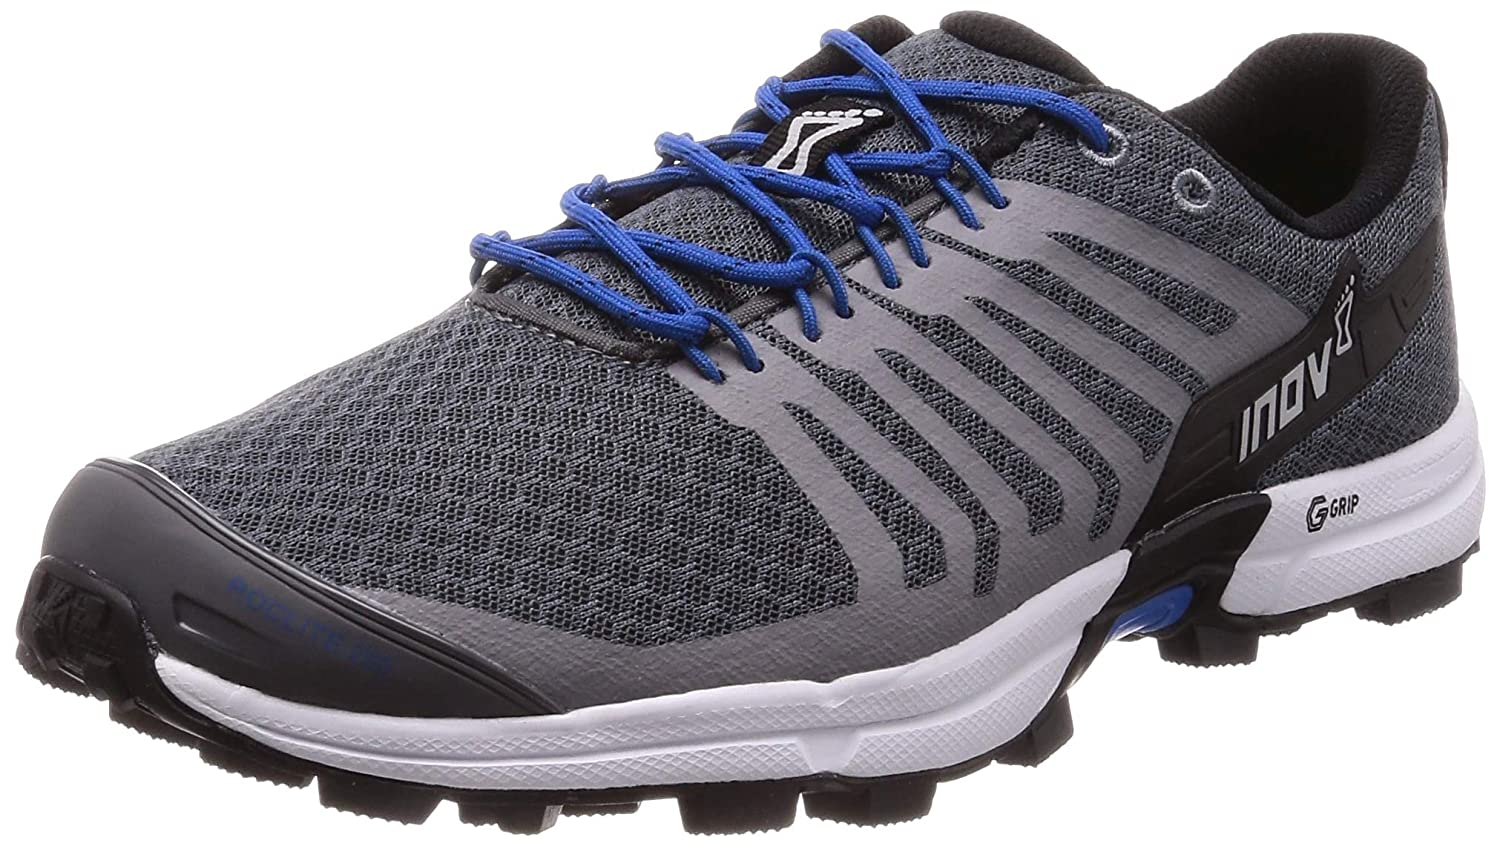 Grey bluee Inov-8 Mens Roclite 290 V2   Trail Running OCR shoes   Lightweight   Superior Durability & Unrivalled Graphene Grip